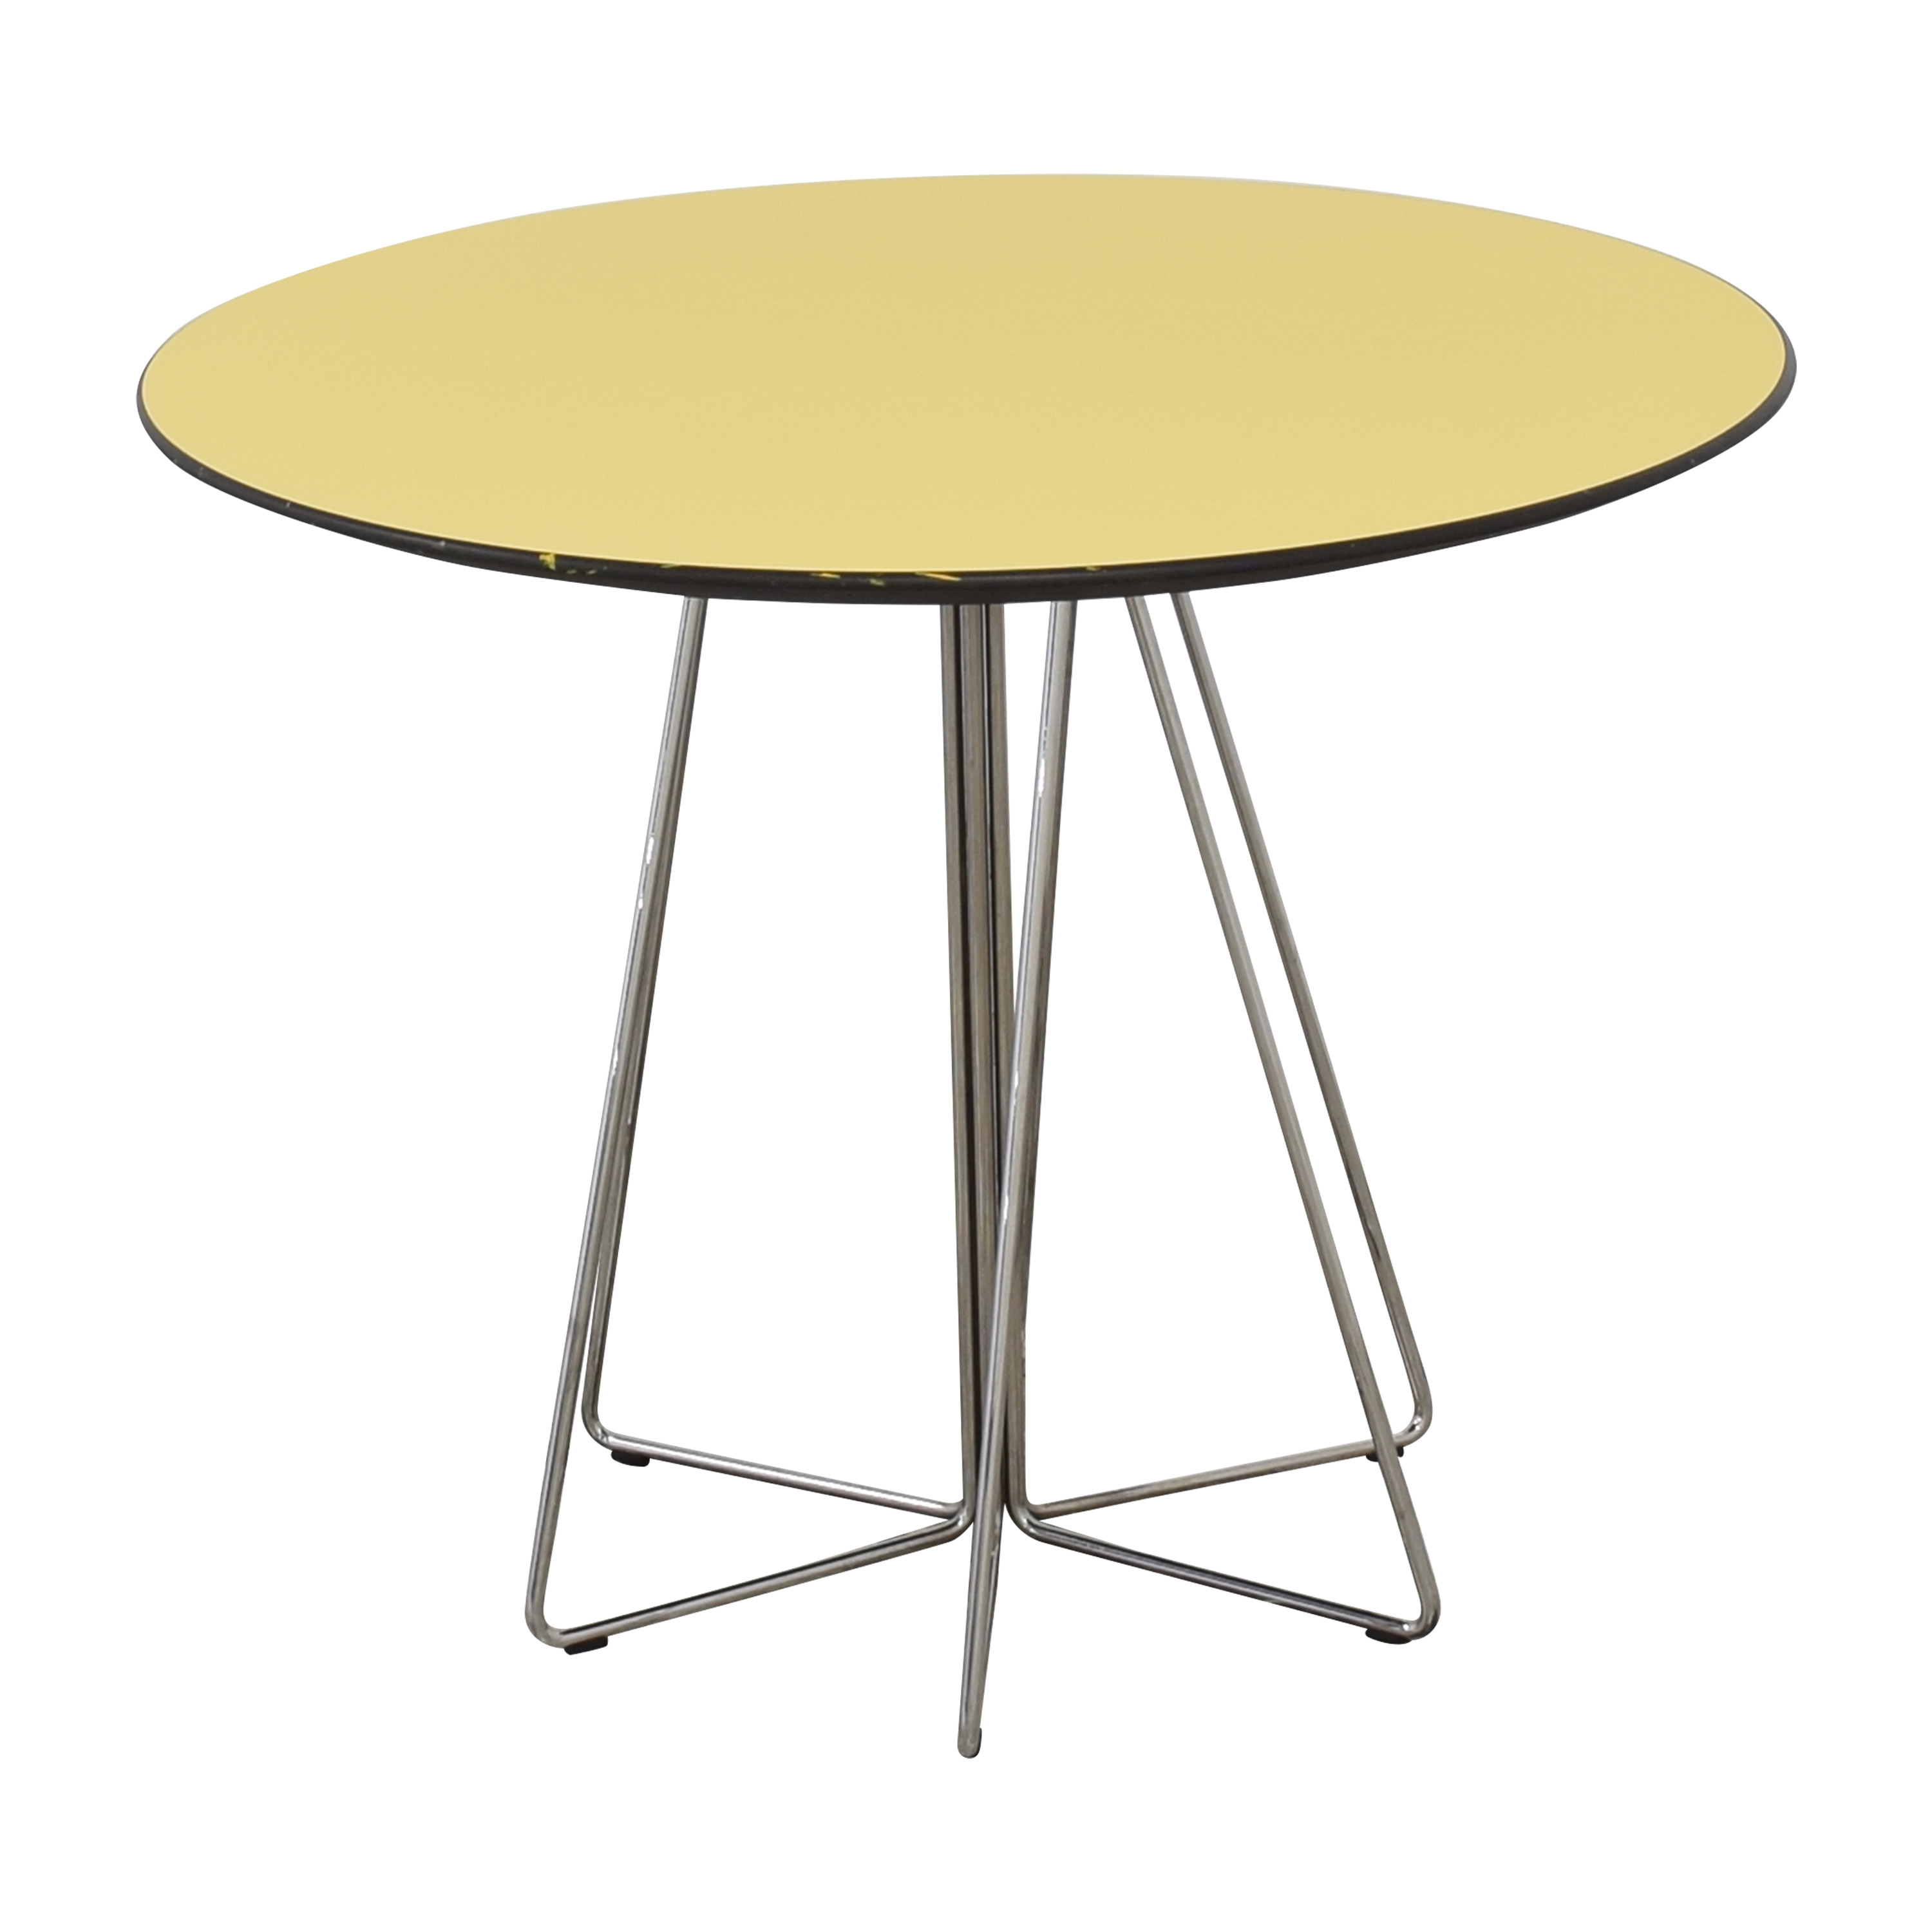 Knoll Knoll Vingelli Designs Paperclip Table price